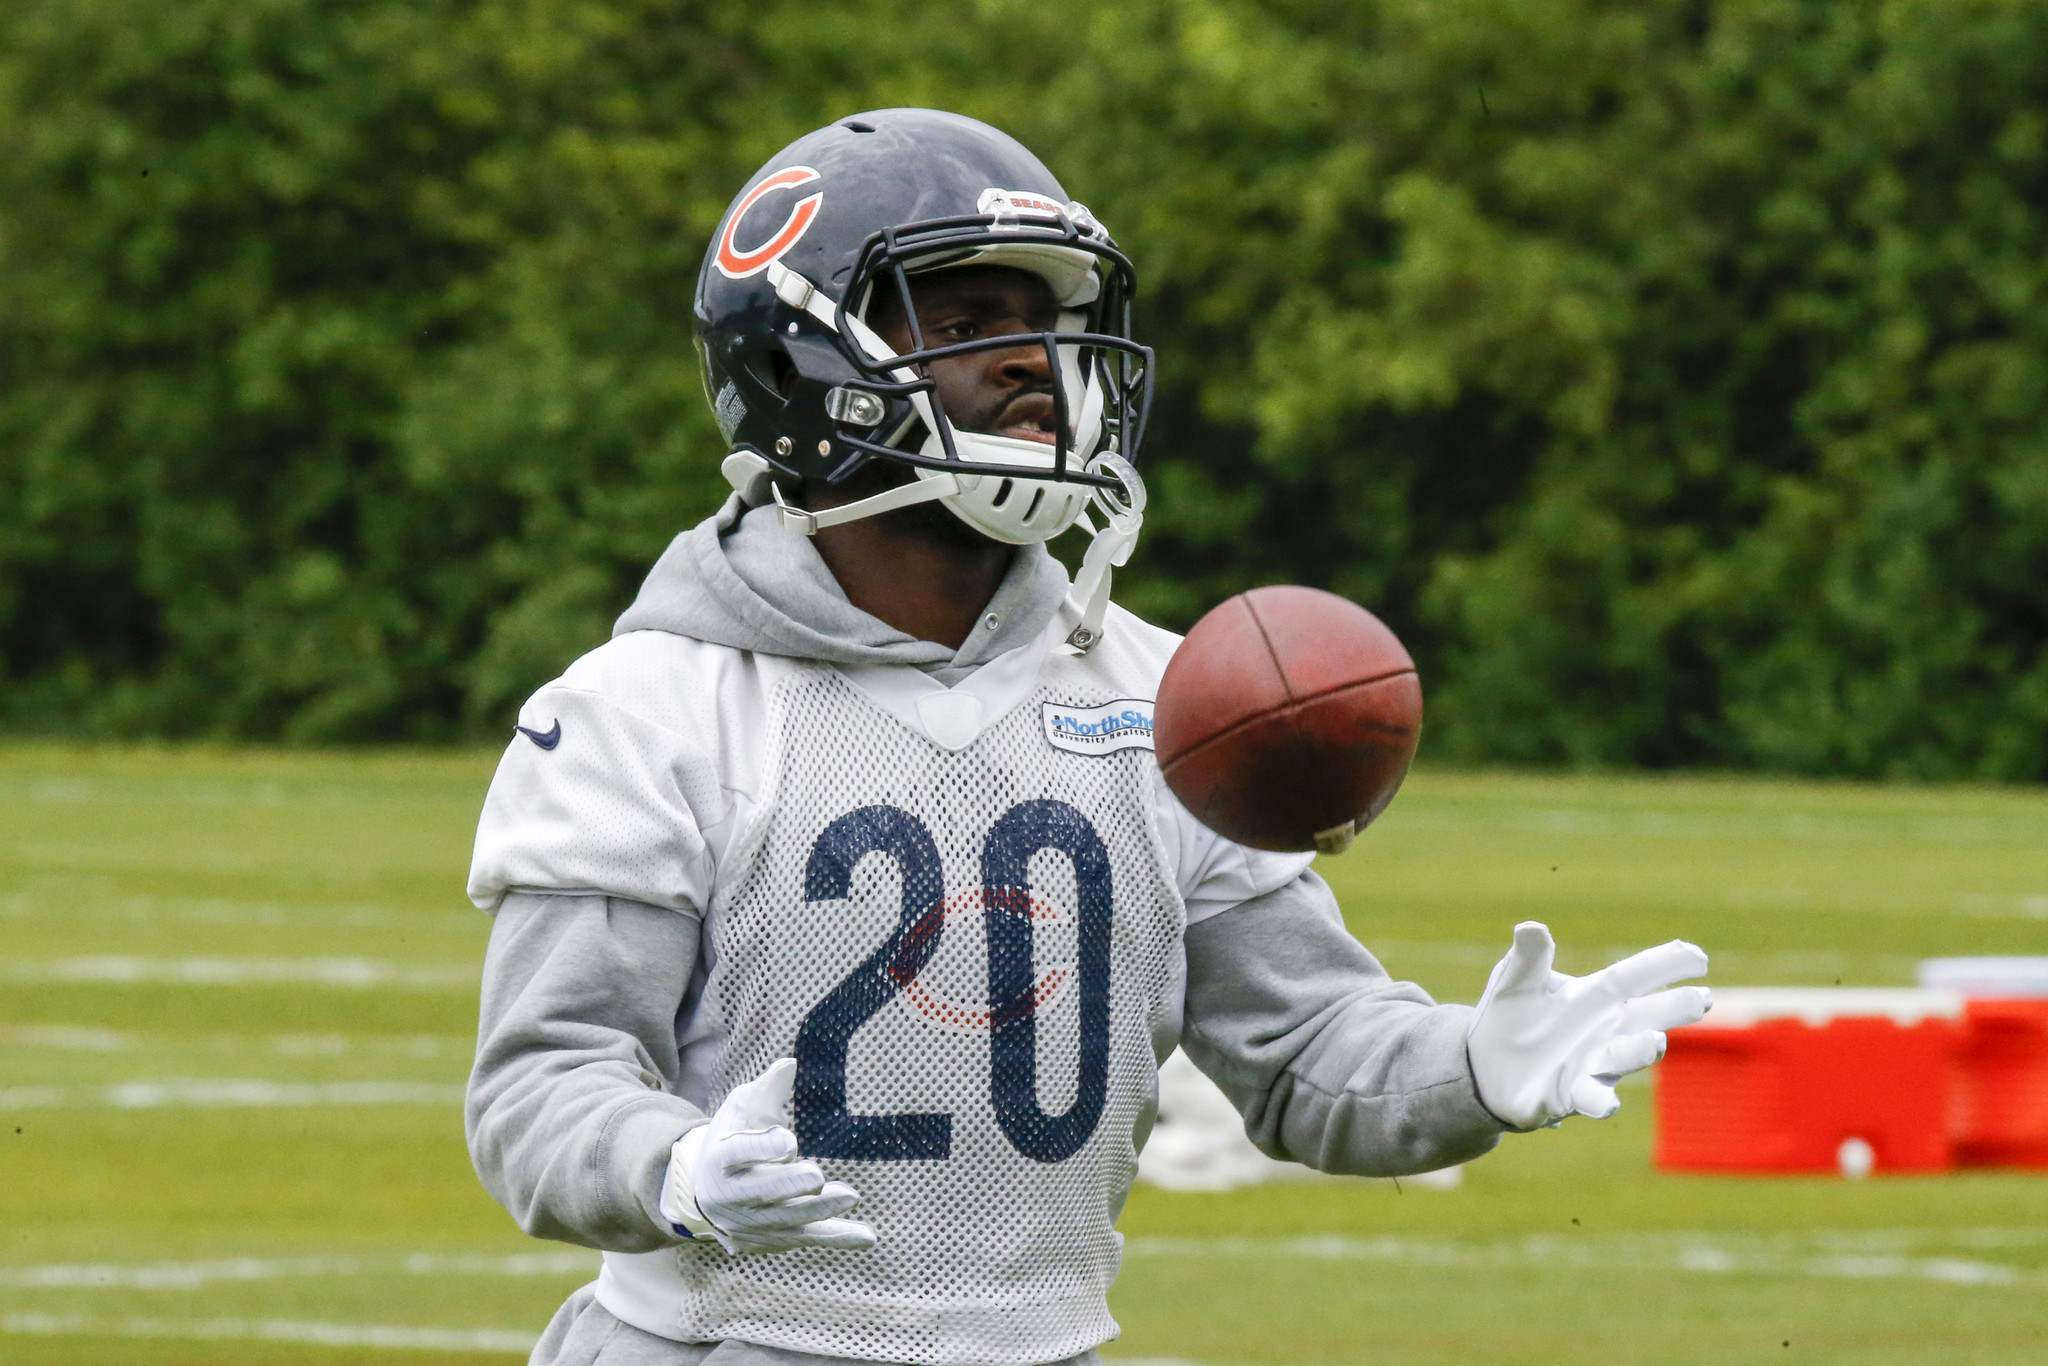 Ct-cornerbacks-bears-camp-preview-spt-0720-20170719